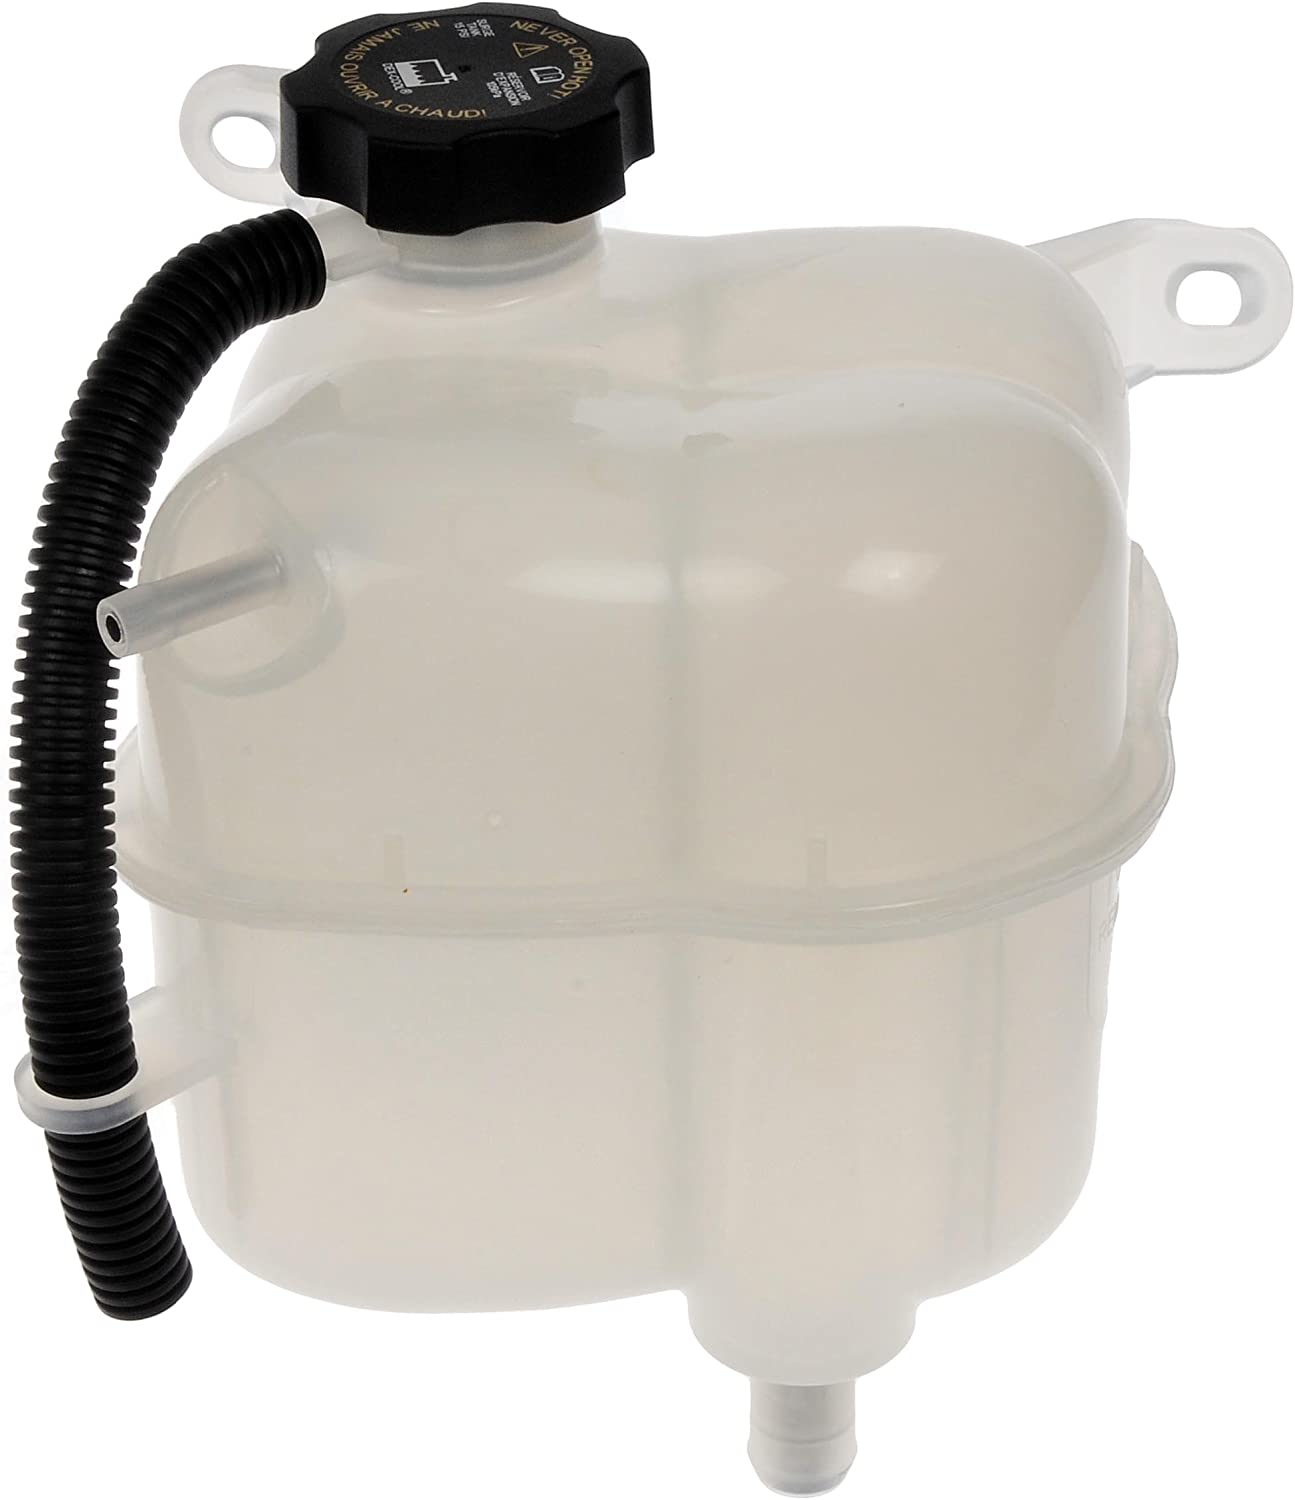 NEW For Chevrolet Equinox 2005 Engine Coolant Recovery Tank Dorman 603-139